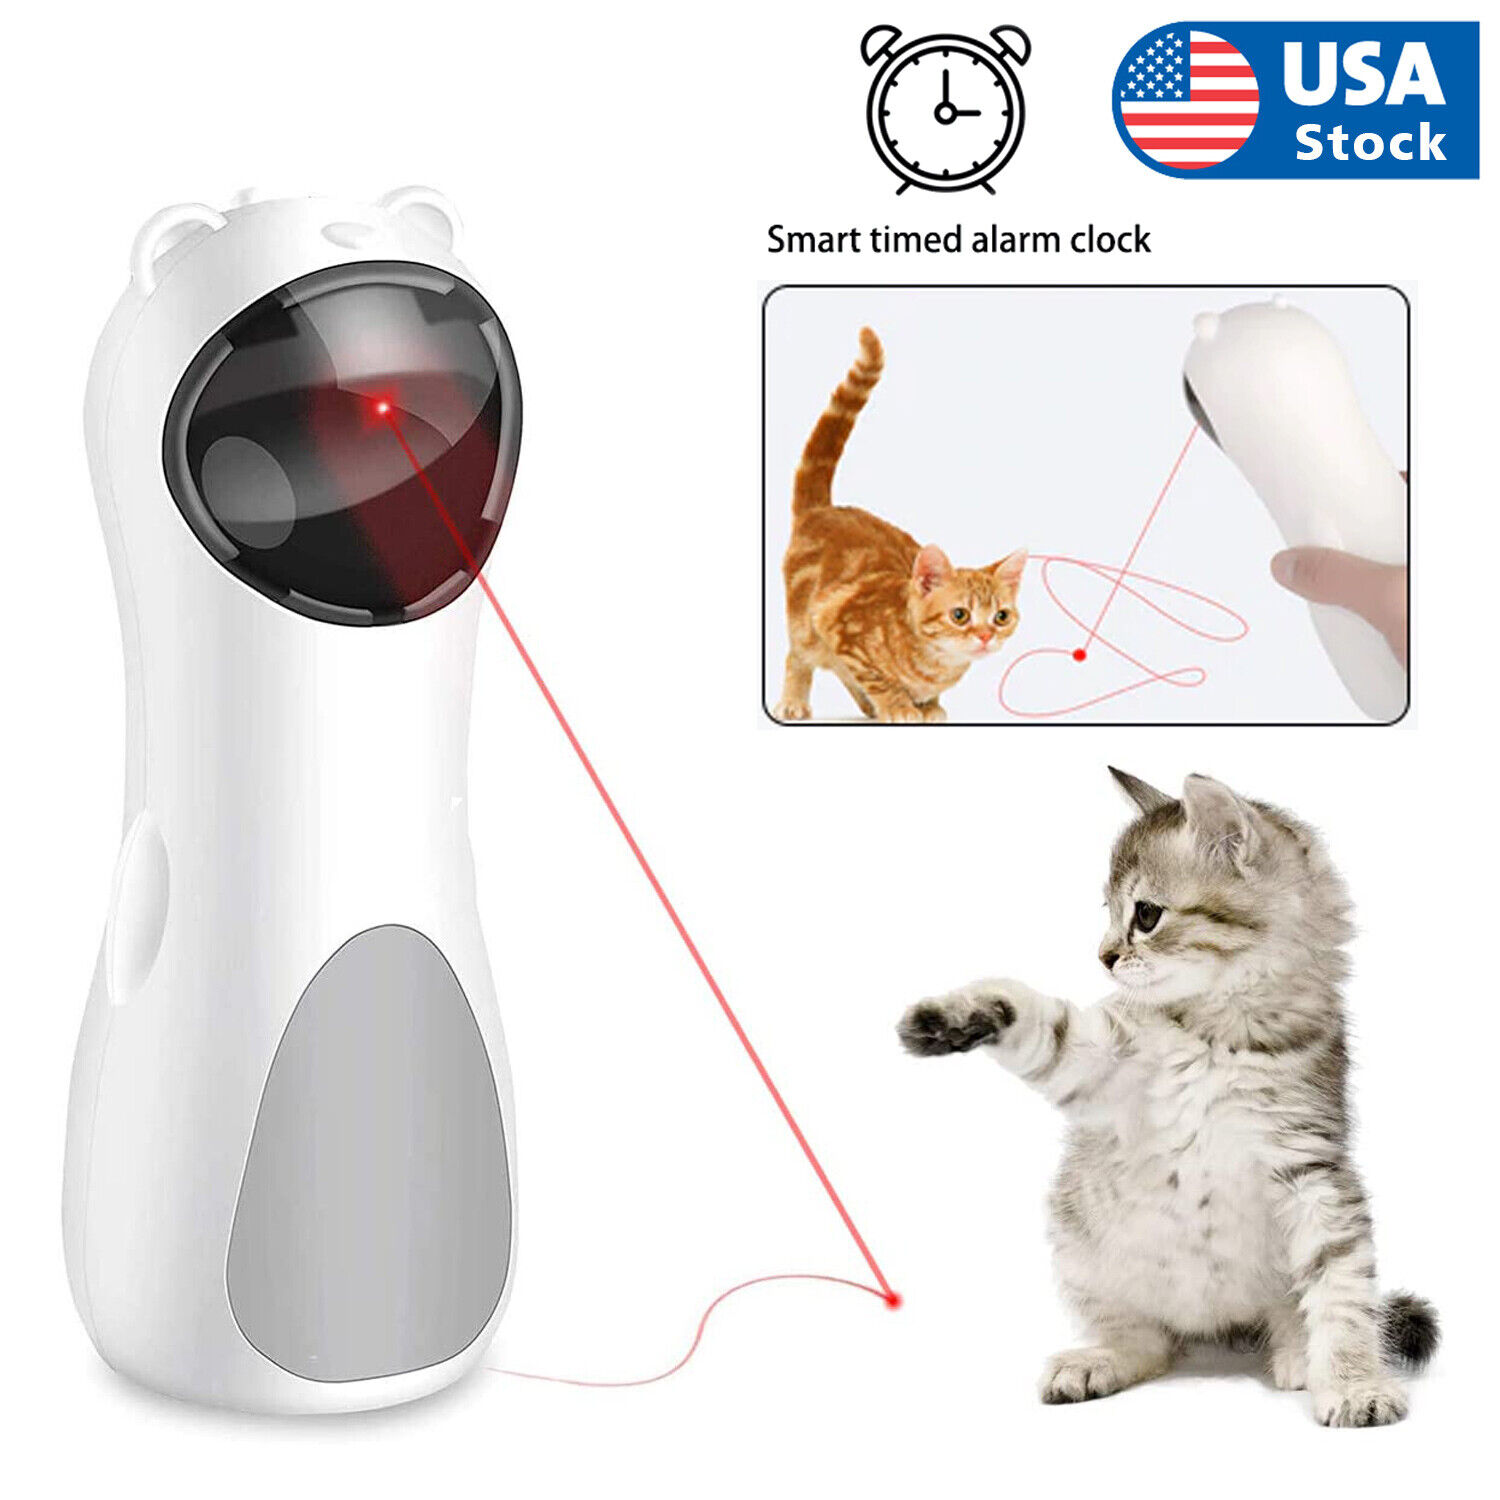 Automatic Cat LED Laser Toys Interactive Smart Teasing Kitten Funny Handheld Toy Cat Supplies